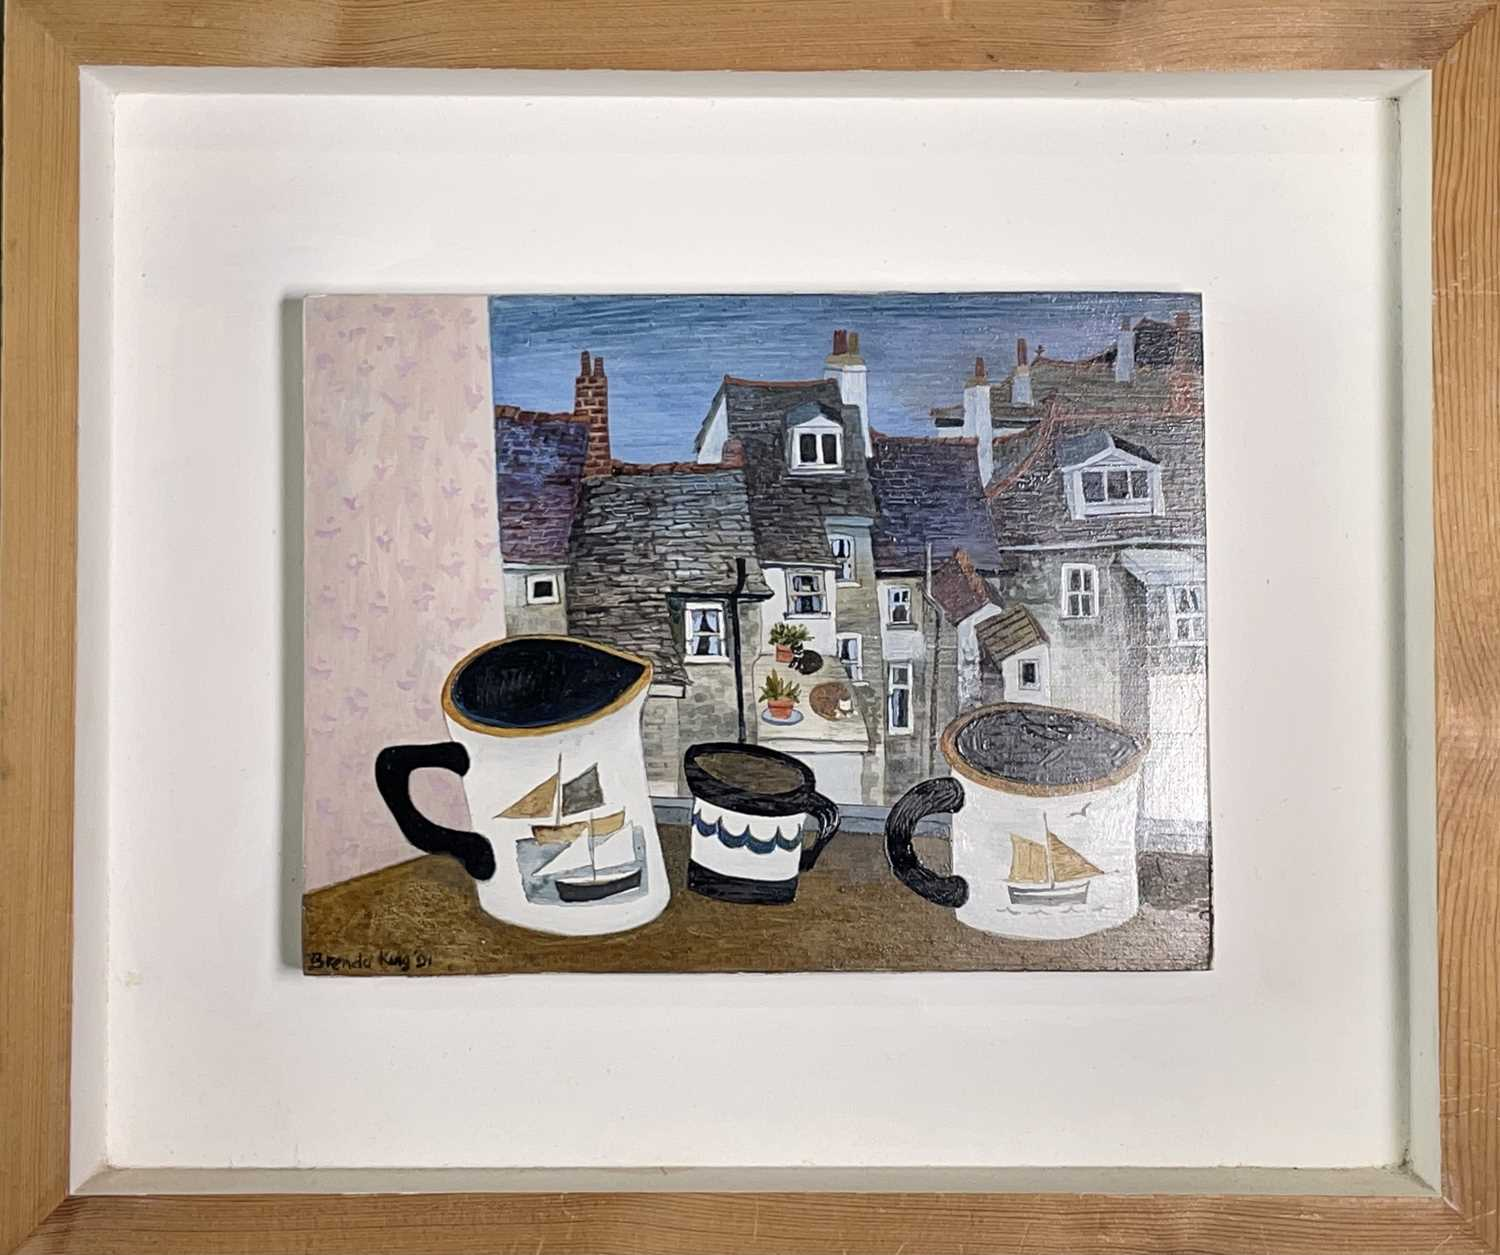 Brenda KING (1934-2011) Two Cats at Porthmeor Oil on board Signed and dated '91, further signed, - Image 3 of 3